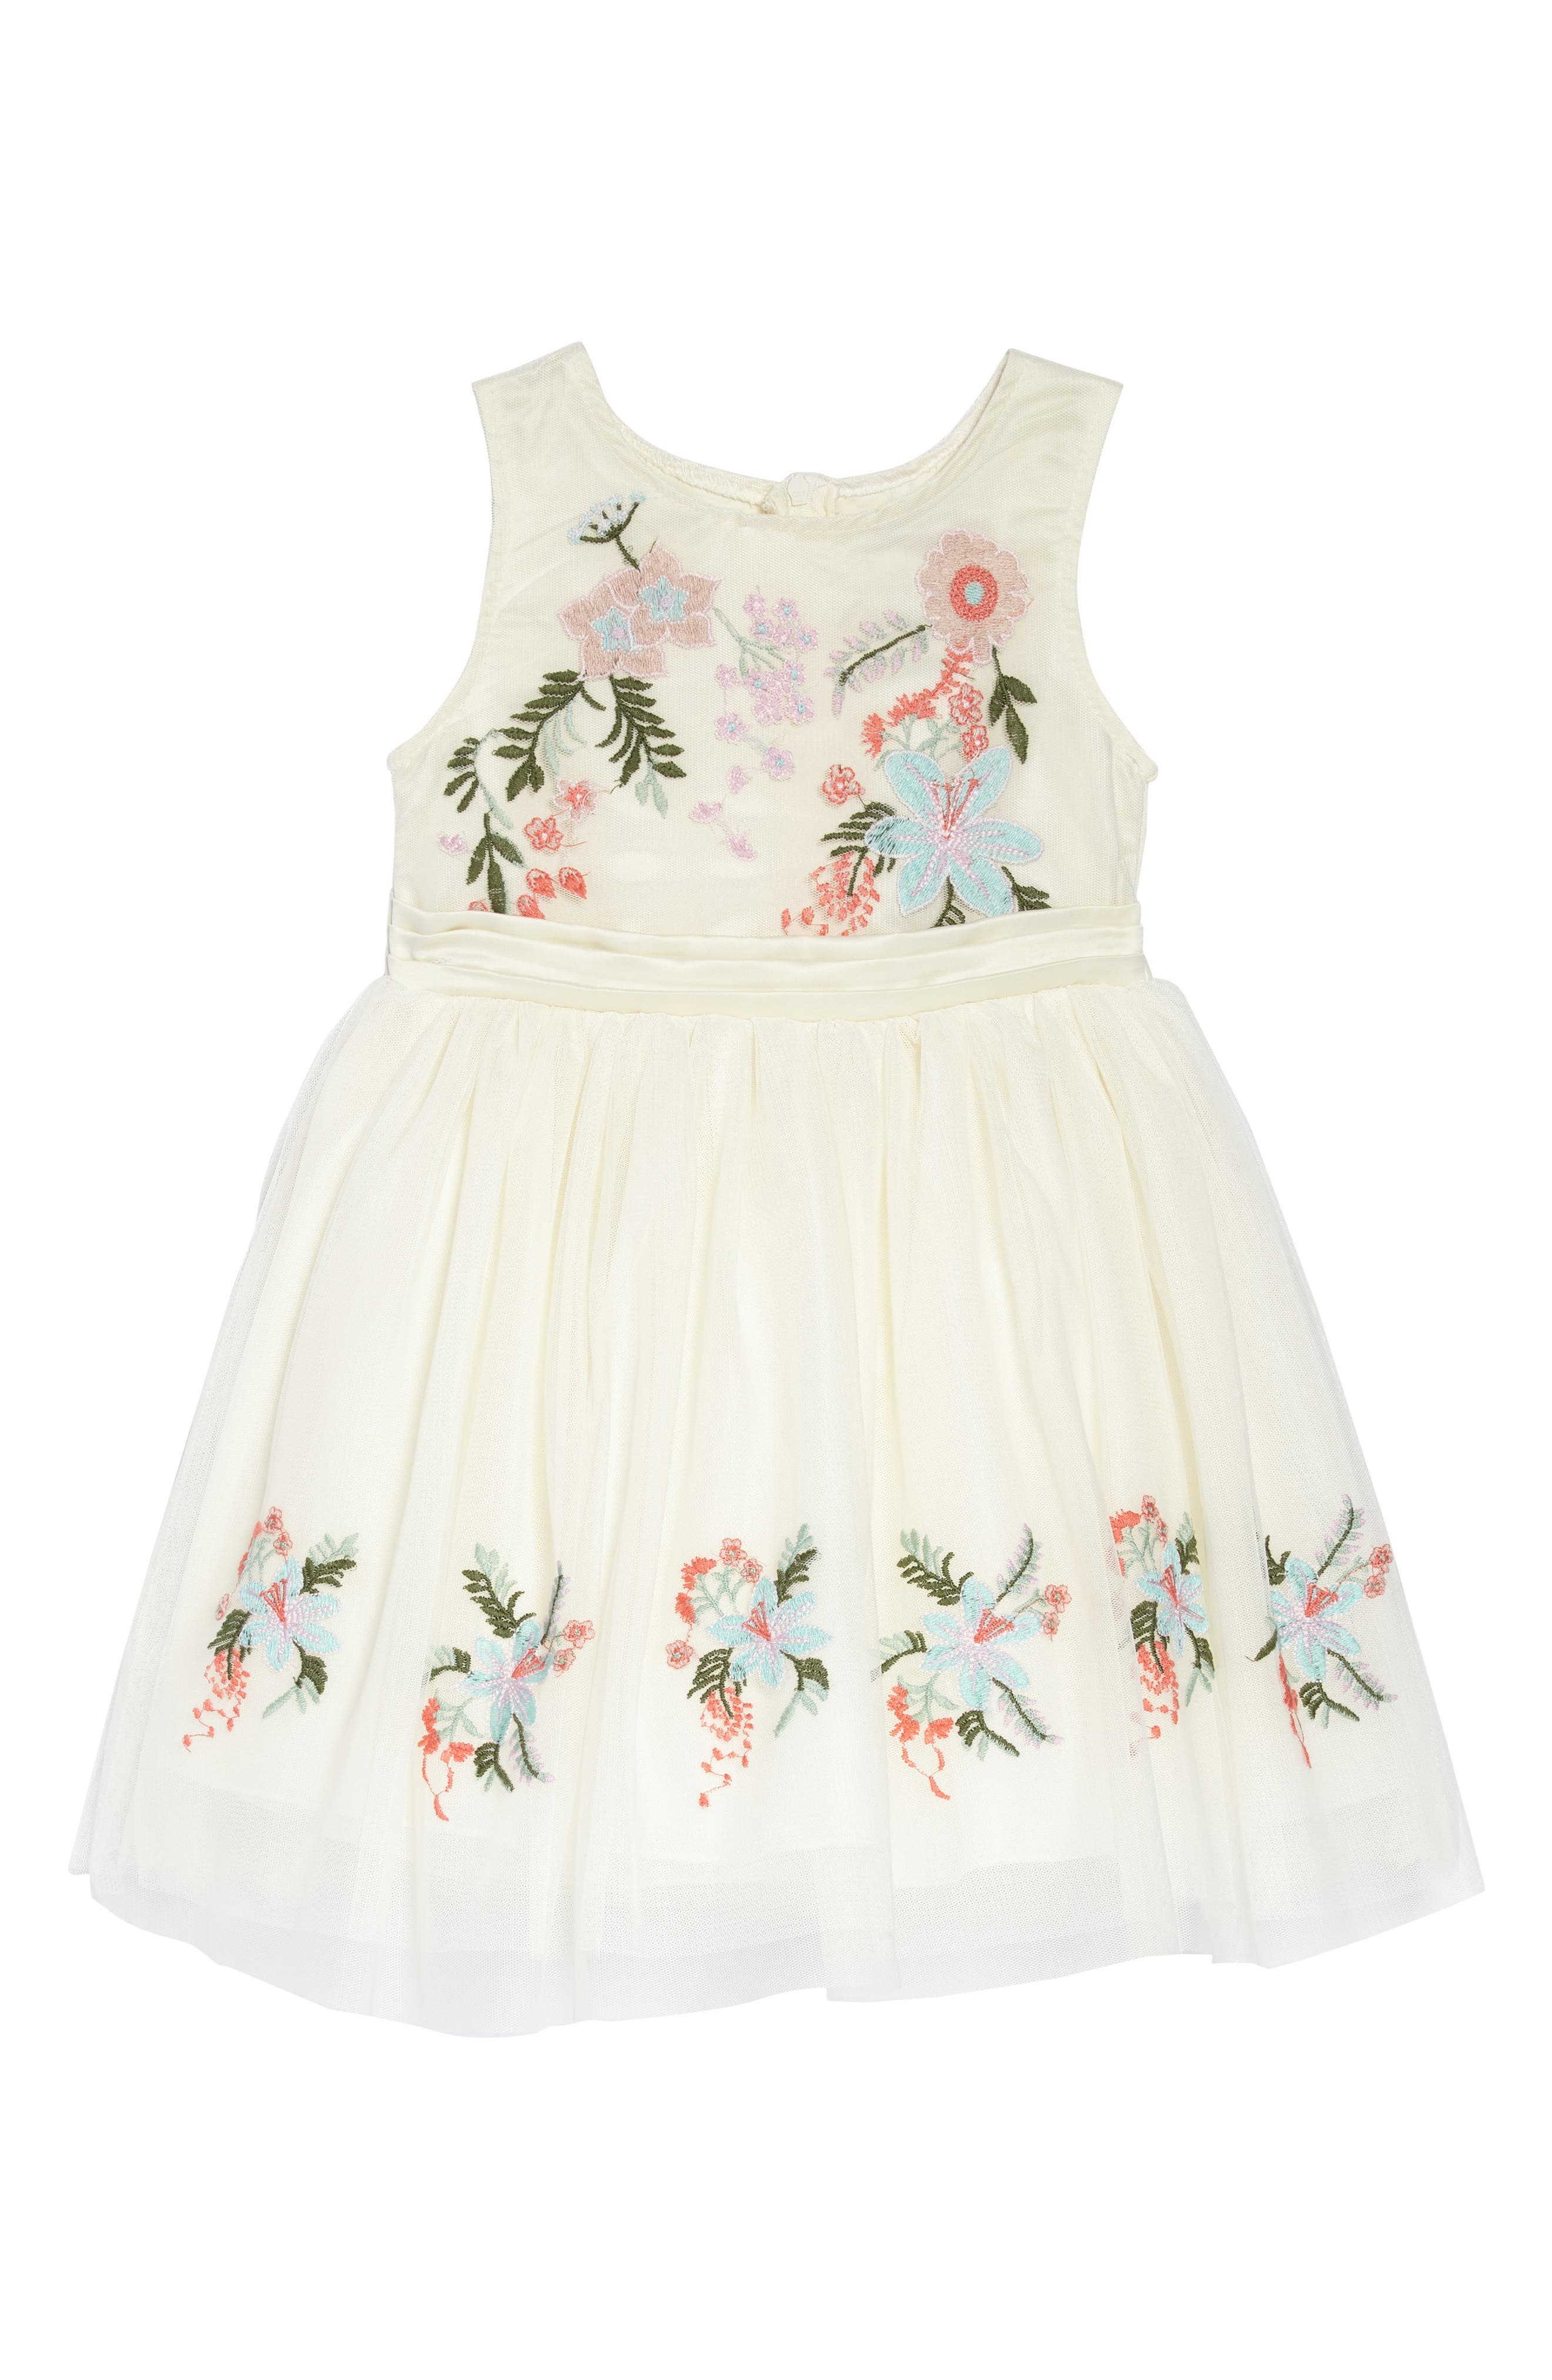 Nanette Lepore Flower Embroidered Party Dress (Toddler Girls & Little Girls)